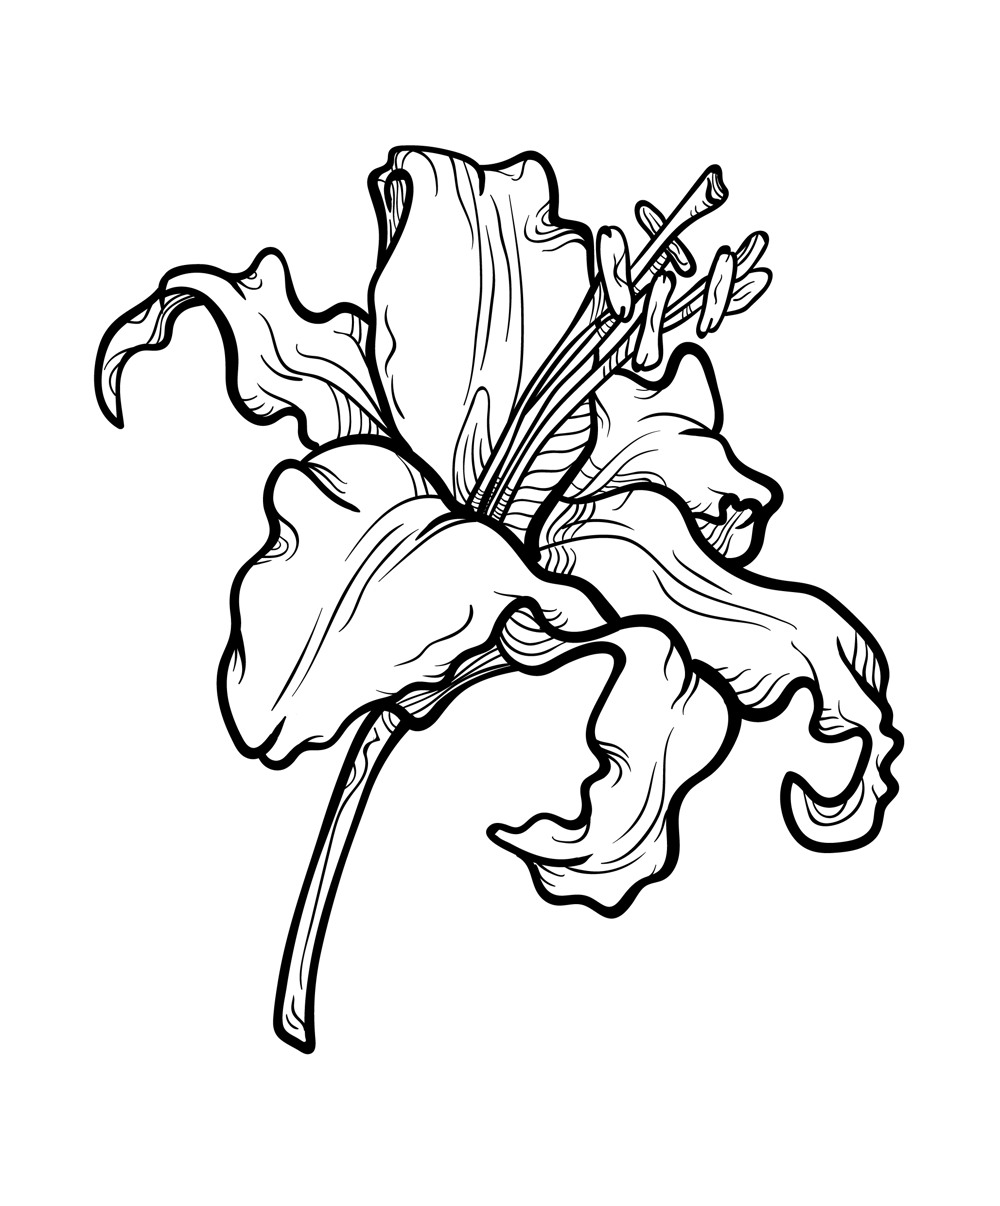 Lily - image 1 - student project